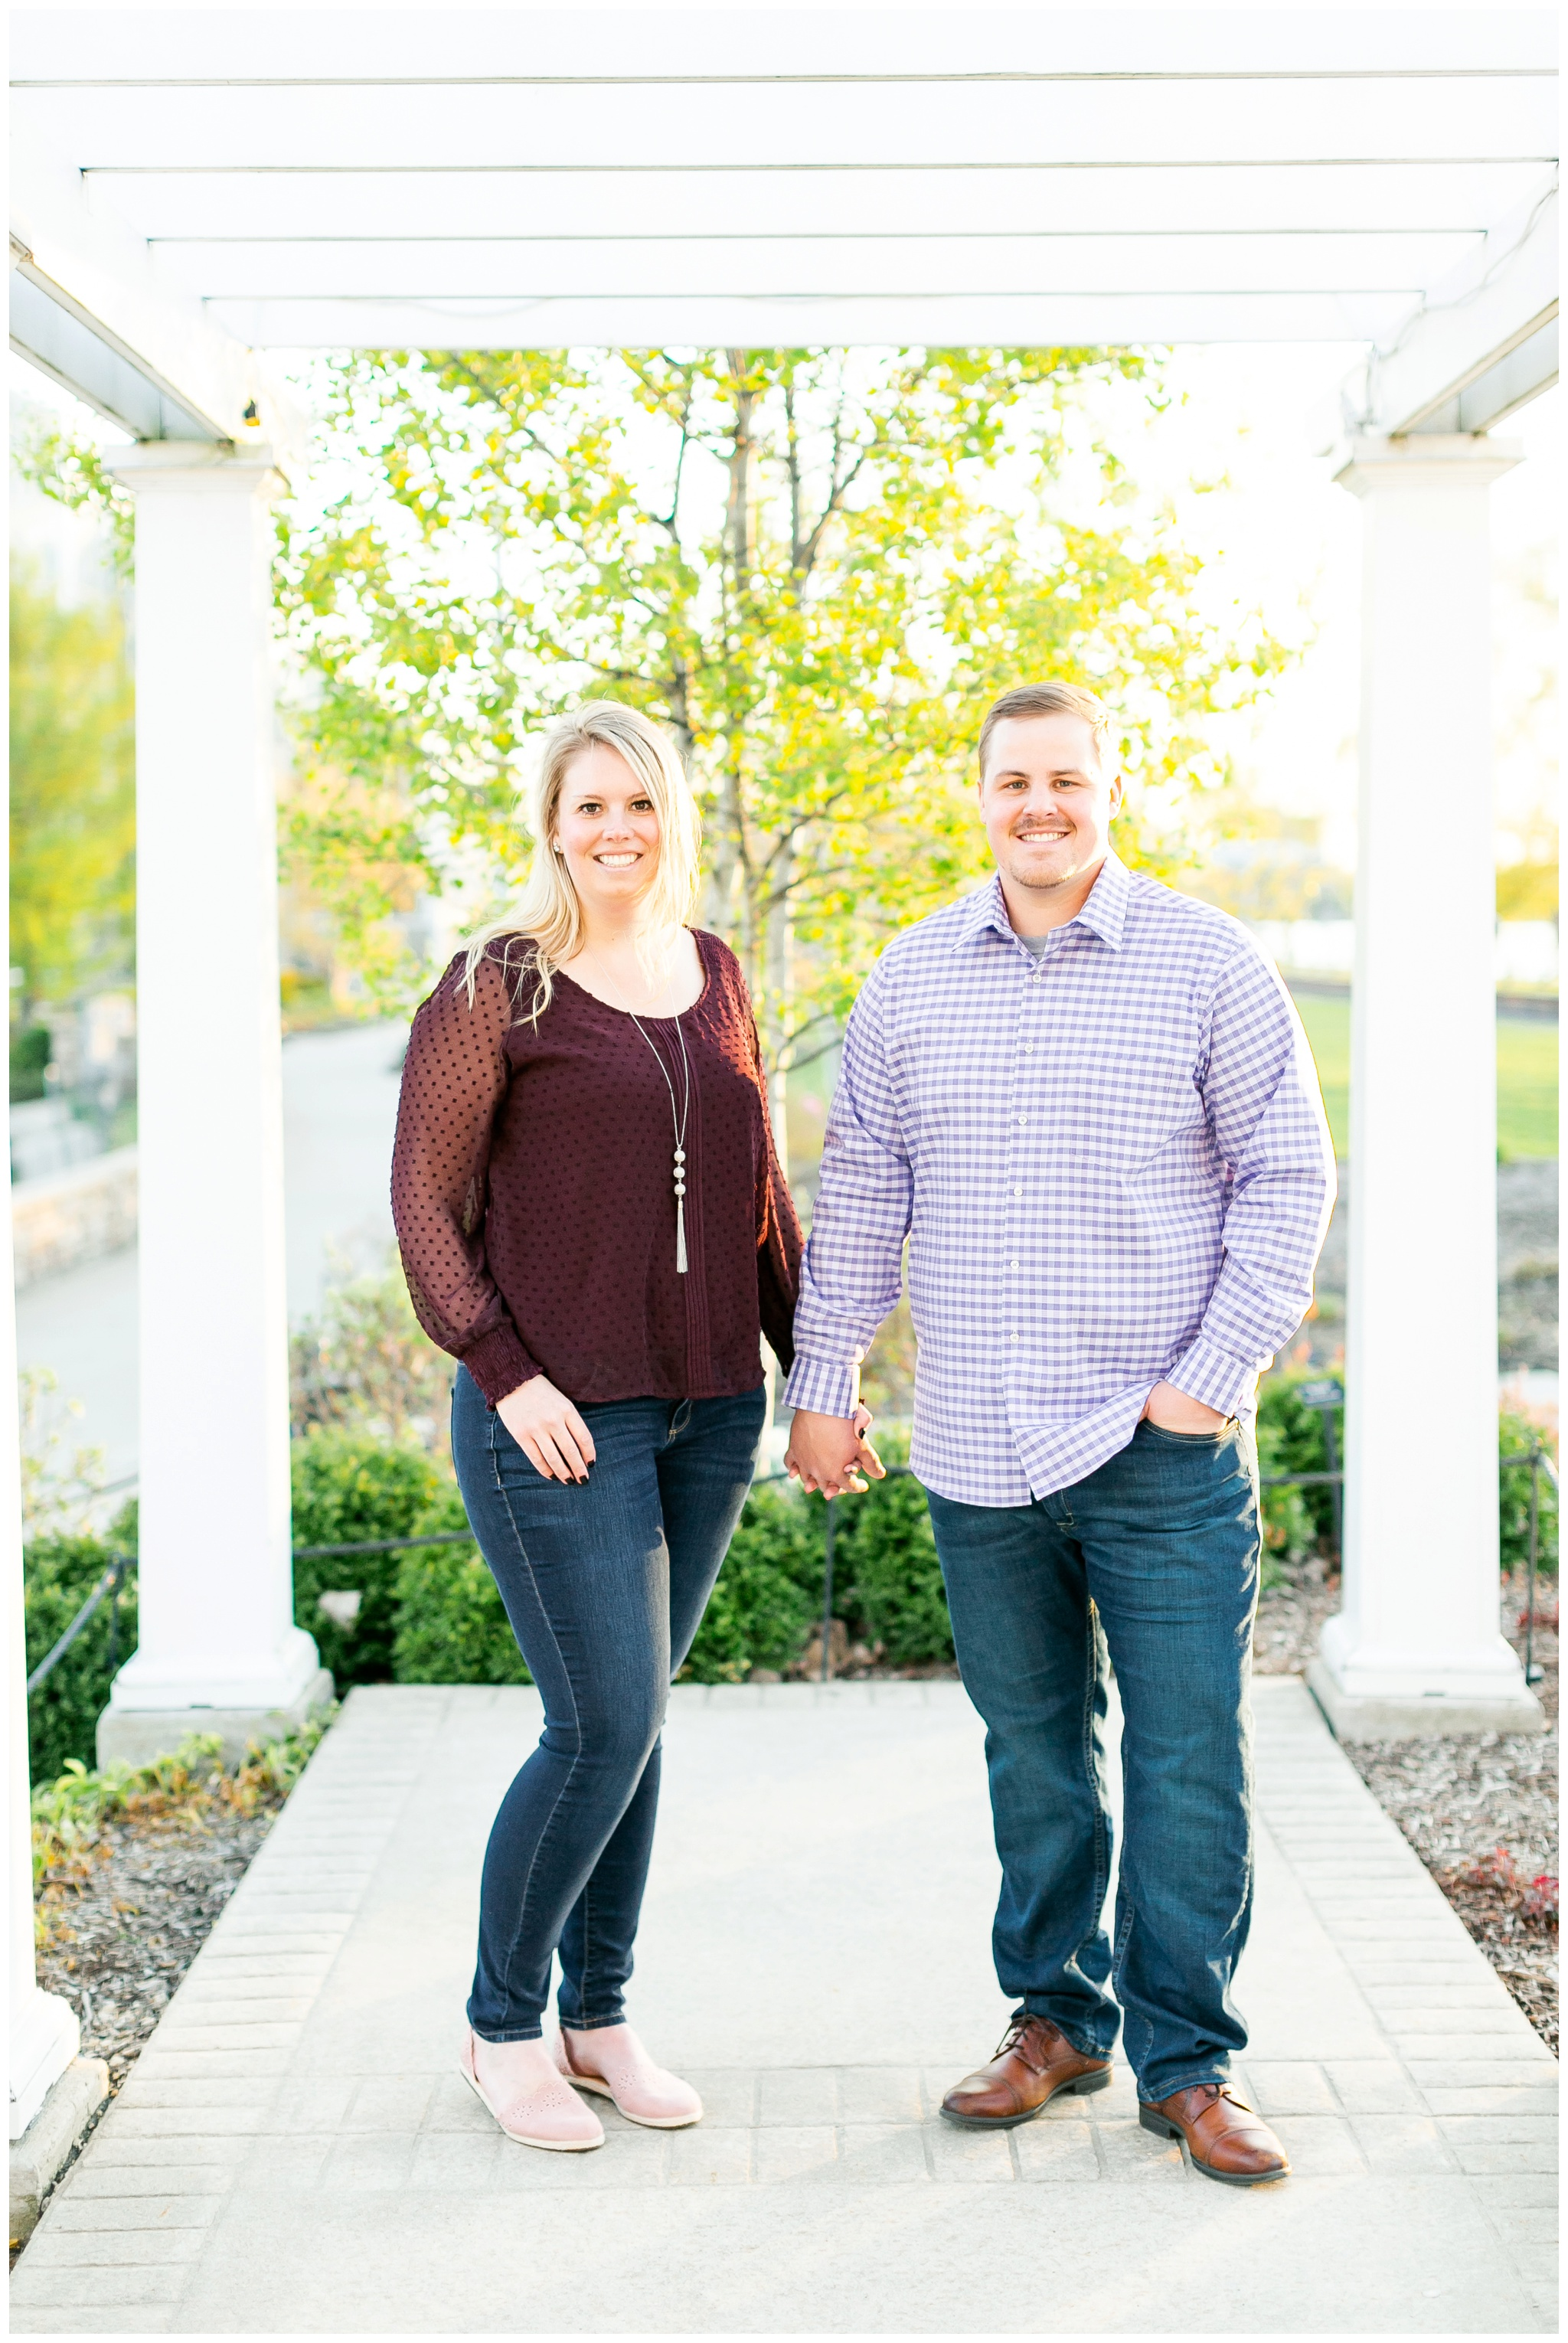 nicholas_conservatory_engagement_session_rockford_illinois_caynay_photo_2999.jpg